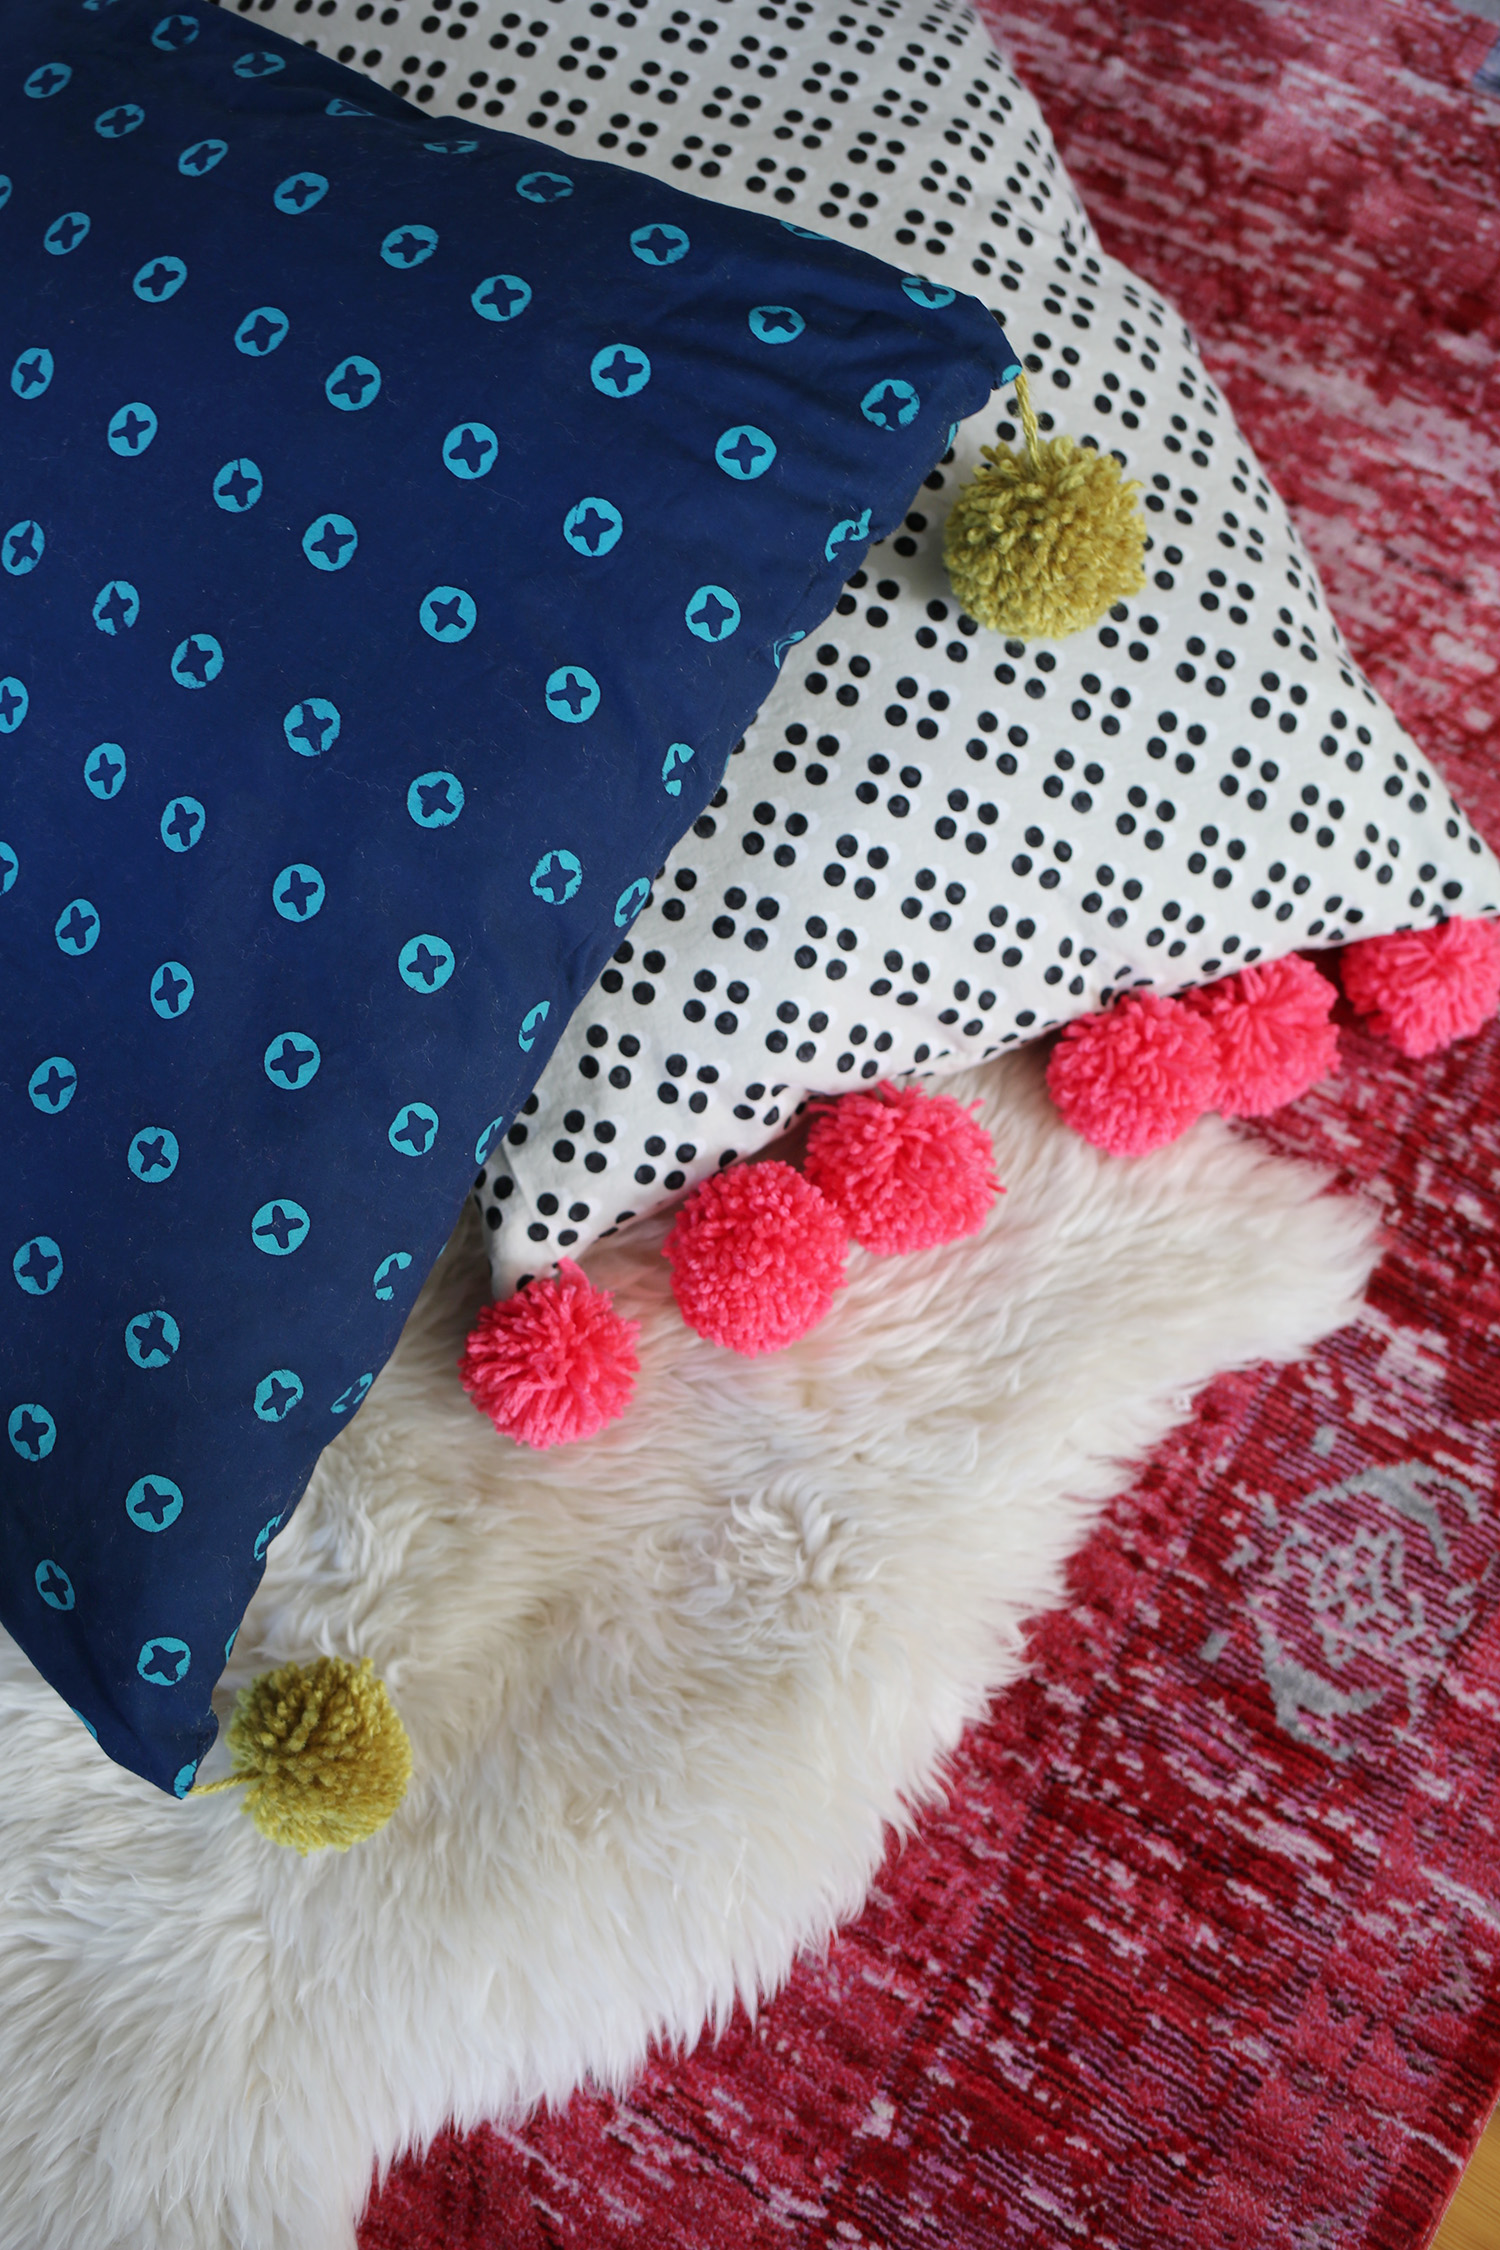 Make your own comfy floor pillows with this easy tutorial over at www.aBeautifulMess.com